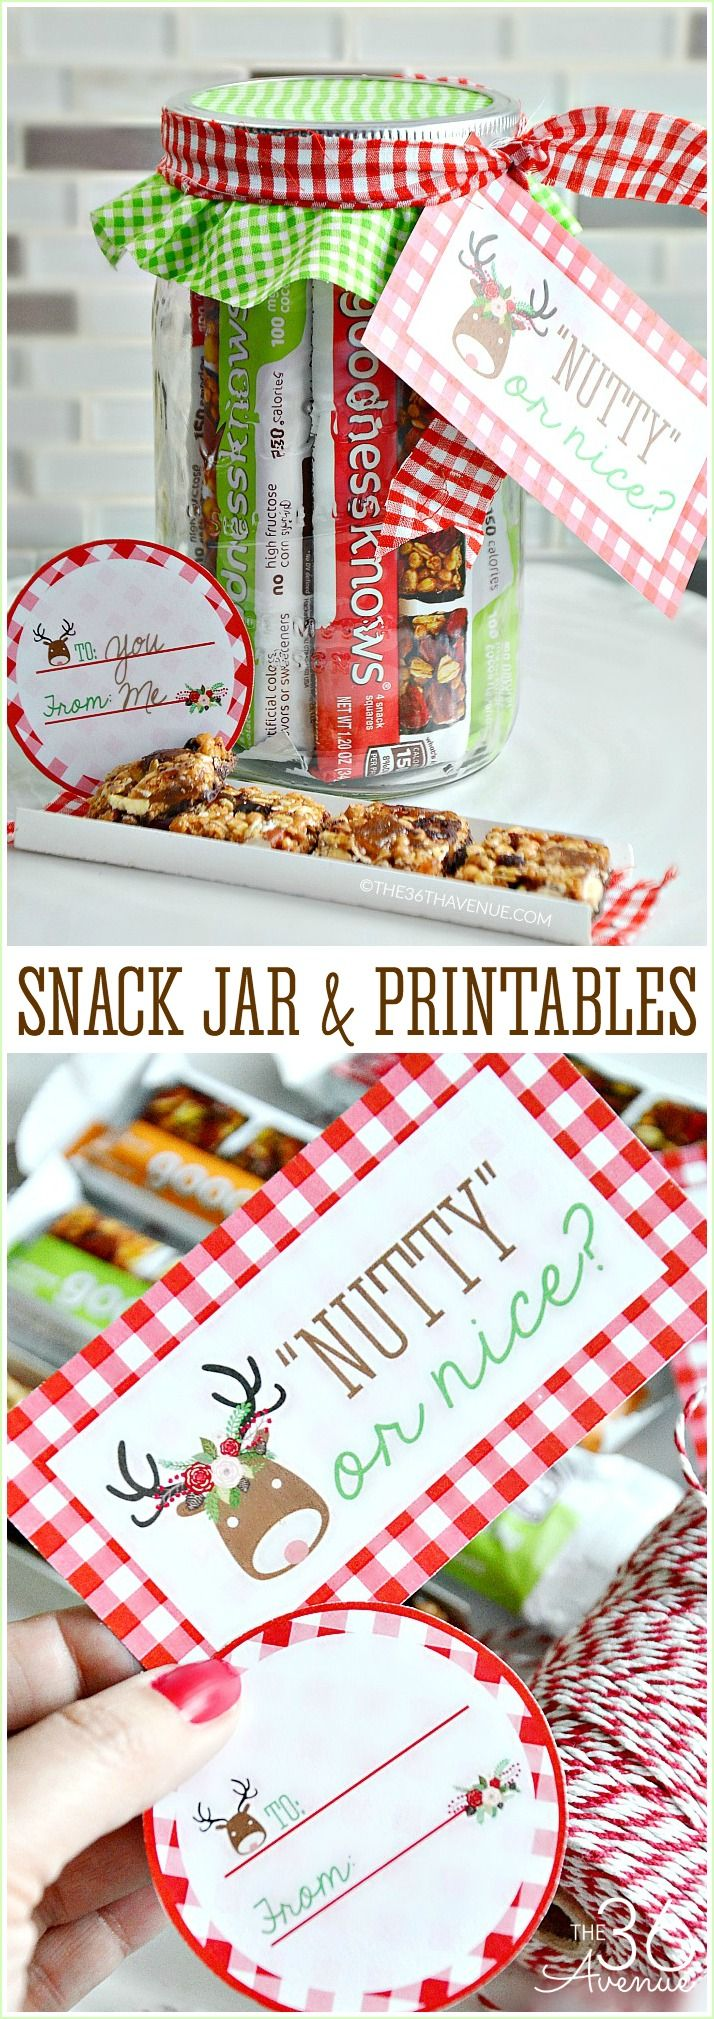 Handmade Gift Idea and adorable Free Gift Tag Printables. This Snack Jar is perfect for teachers, coworkers, and neighbor gifts. Edible gifts are the best and simply delicious!